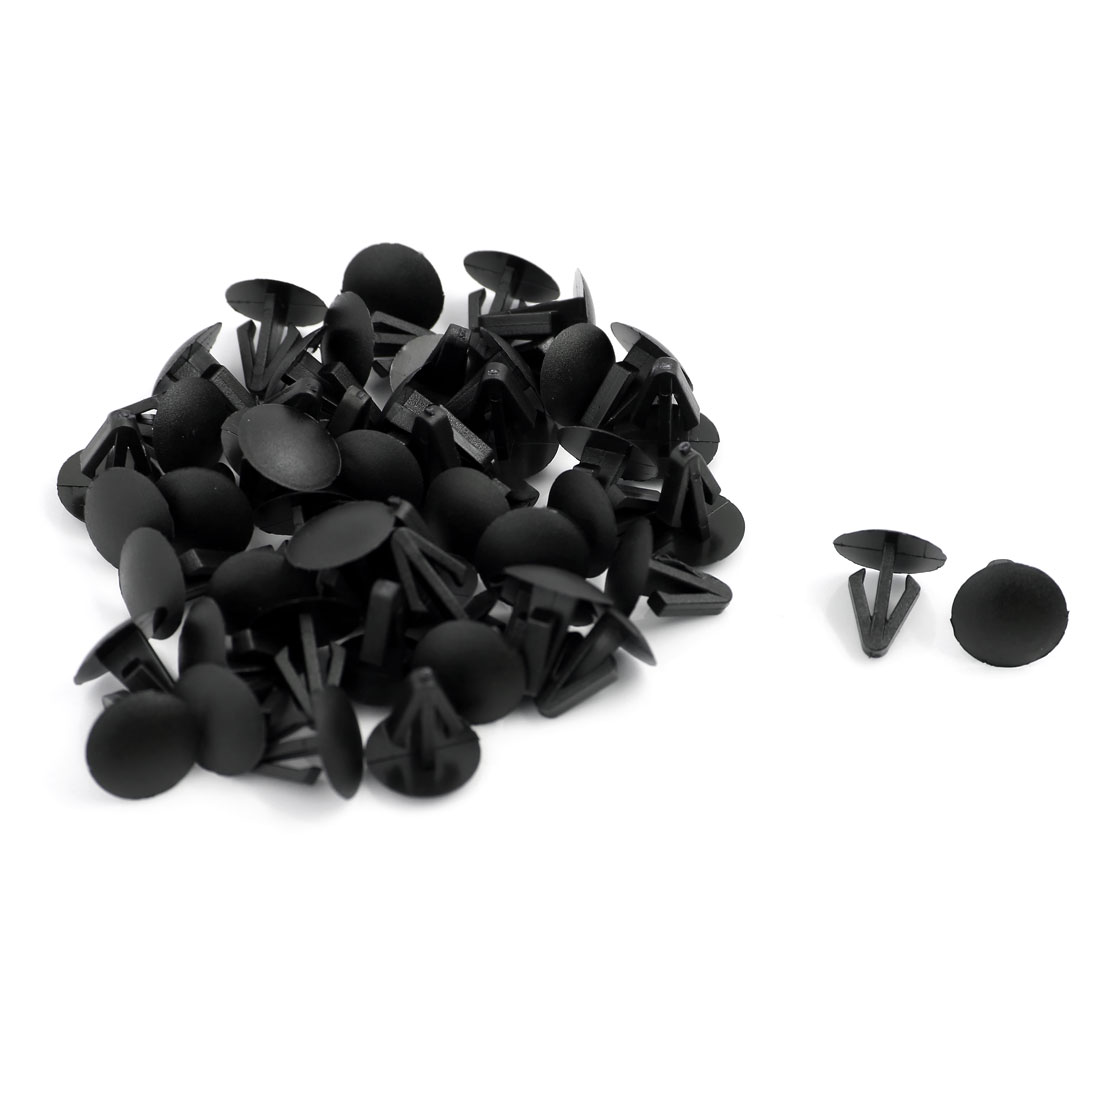 50 Pcs Plastic Car Door Bumper Trim Fastener Screw Rivet Clips 9mm x 14mm x 14mm